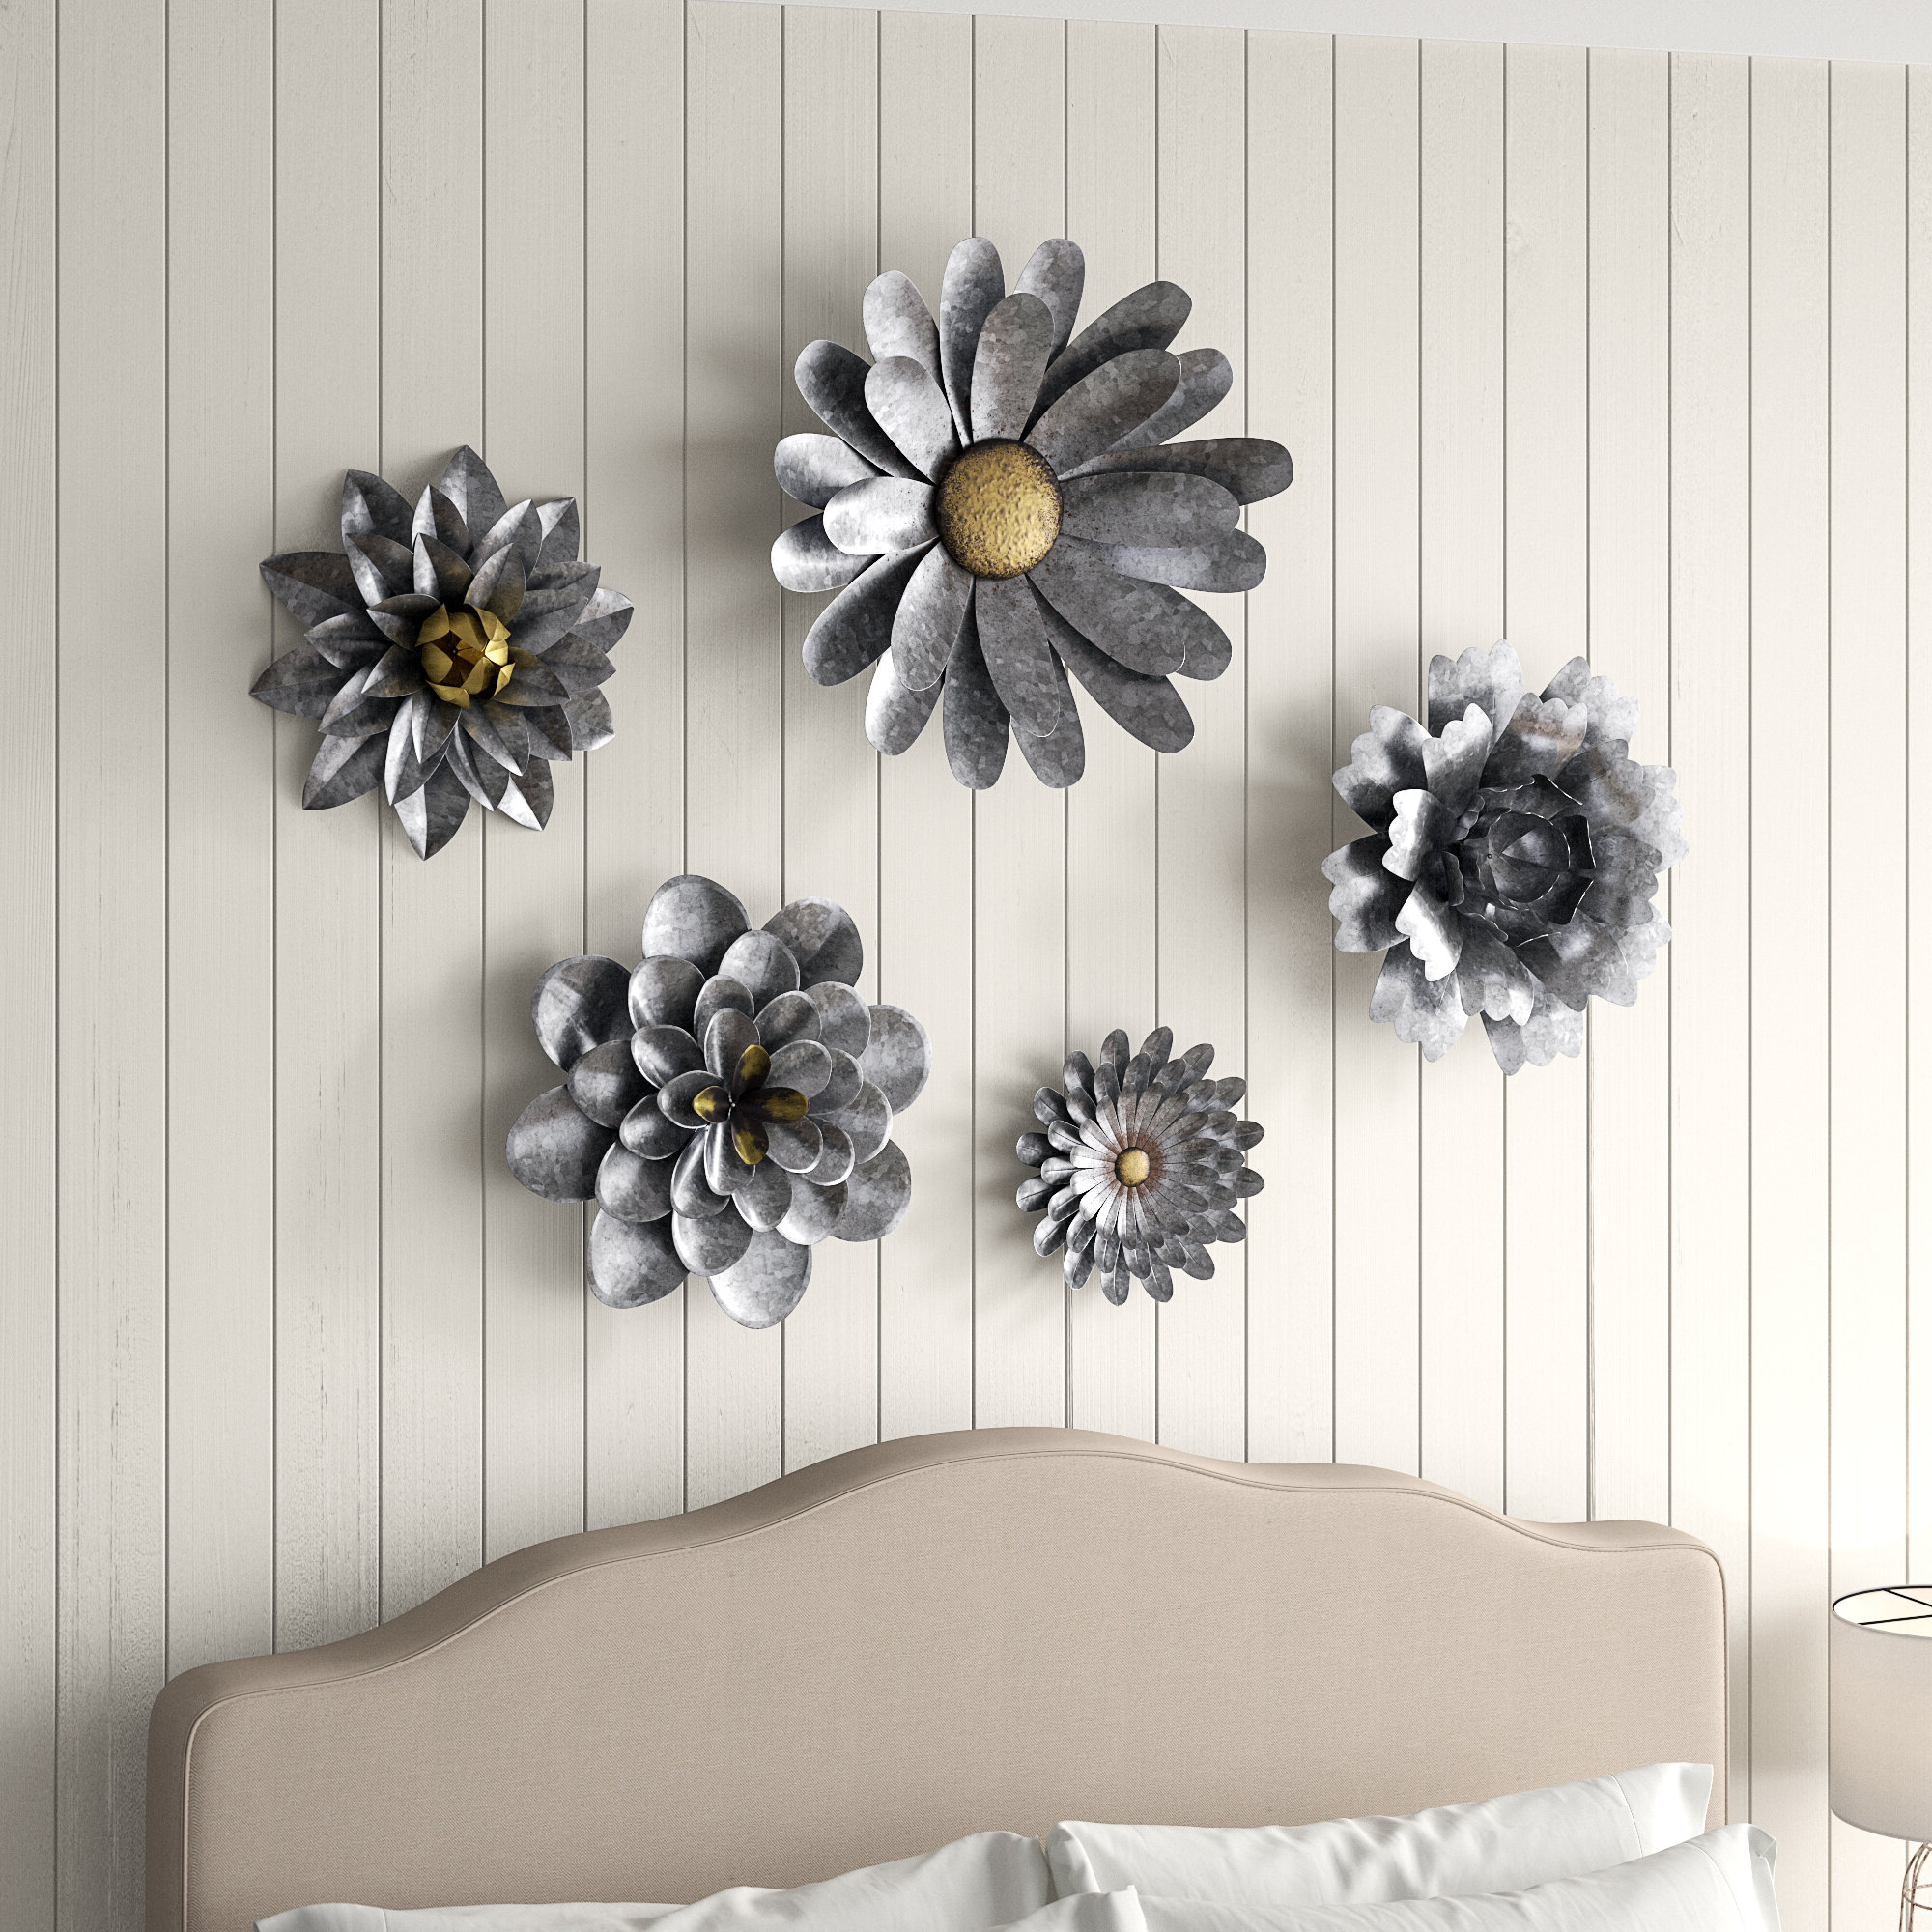 2020 Gracie Oaks 5 Piece Galvanized Metal Flower Hanging Wall Décor Set Throughout 3 Piece Ceramic Flowers Wall Decor Sets (Gallery 3 of 20)